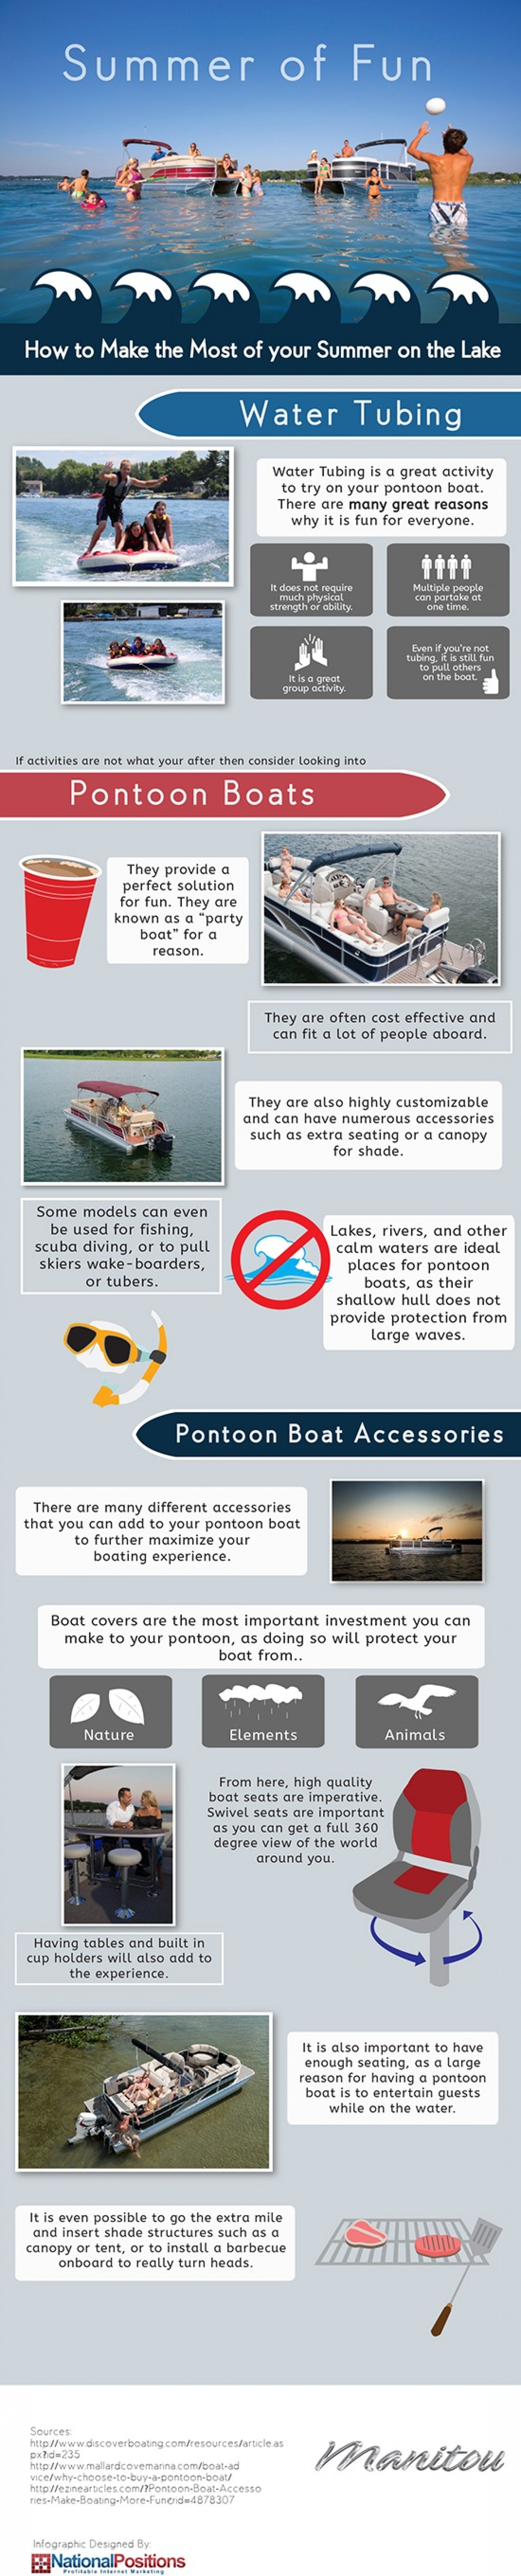 Make the Most of your Summer on the Lake Infographic